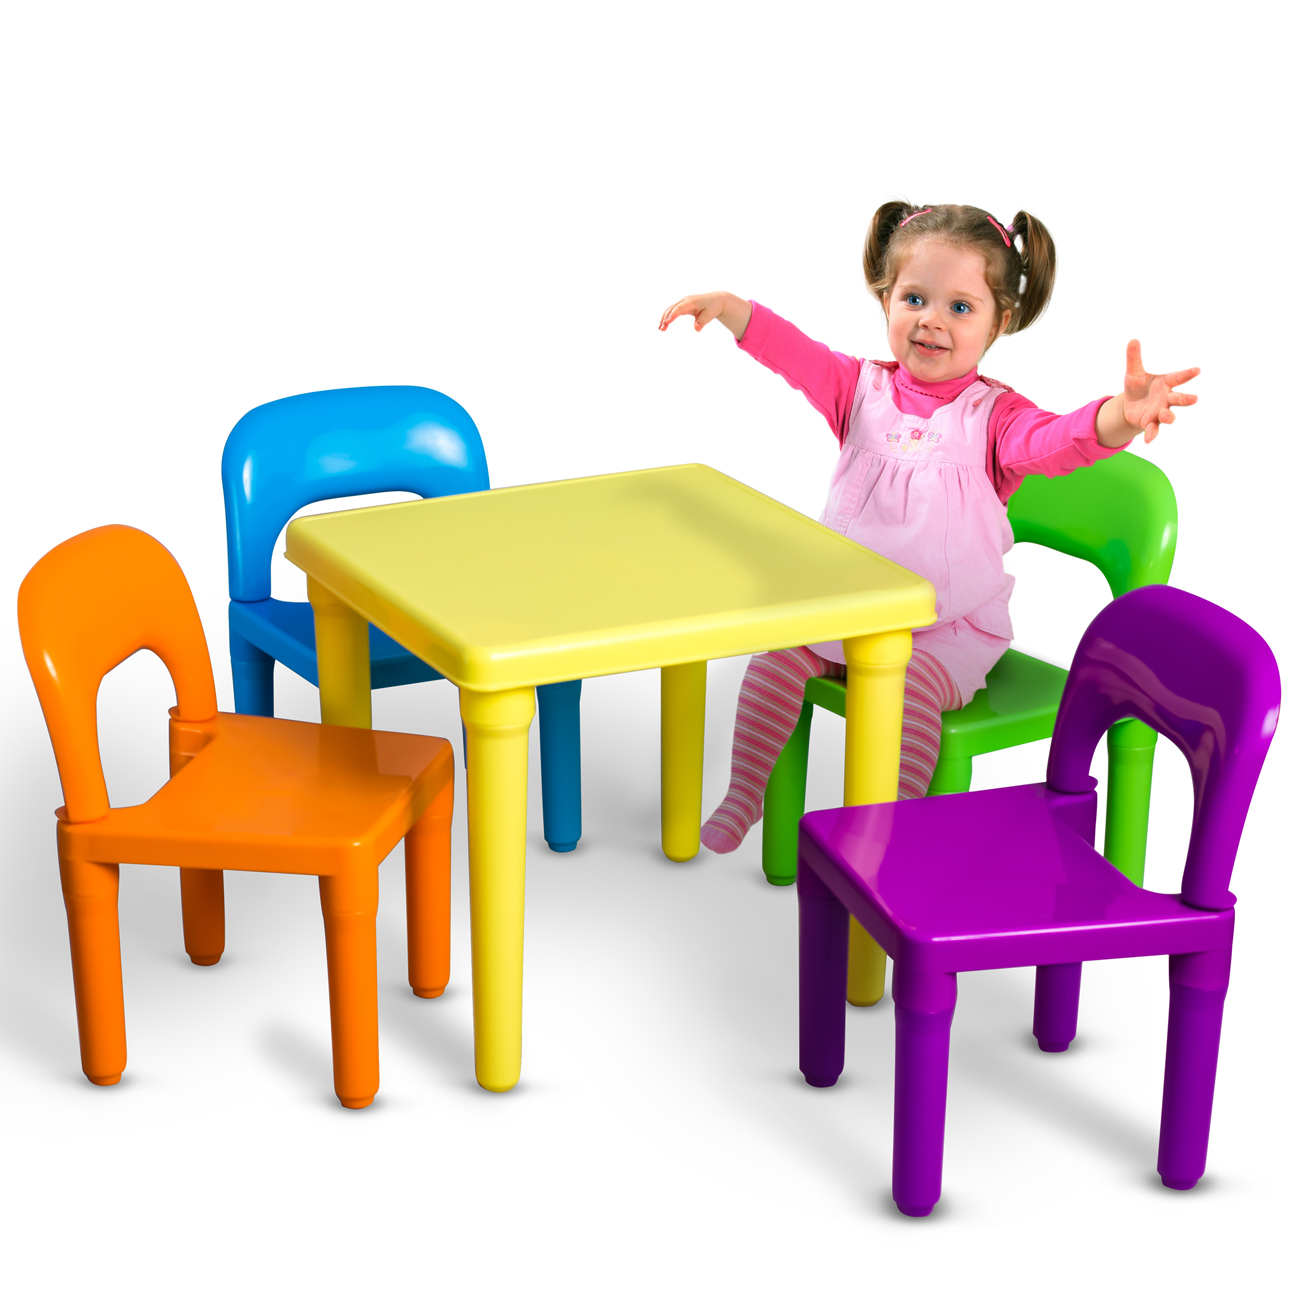 Charmant OxGord Kids Table And Chairs Play Set For Toddler Child Toy Activity  Furniture Indoor Or Outdoor